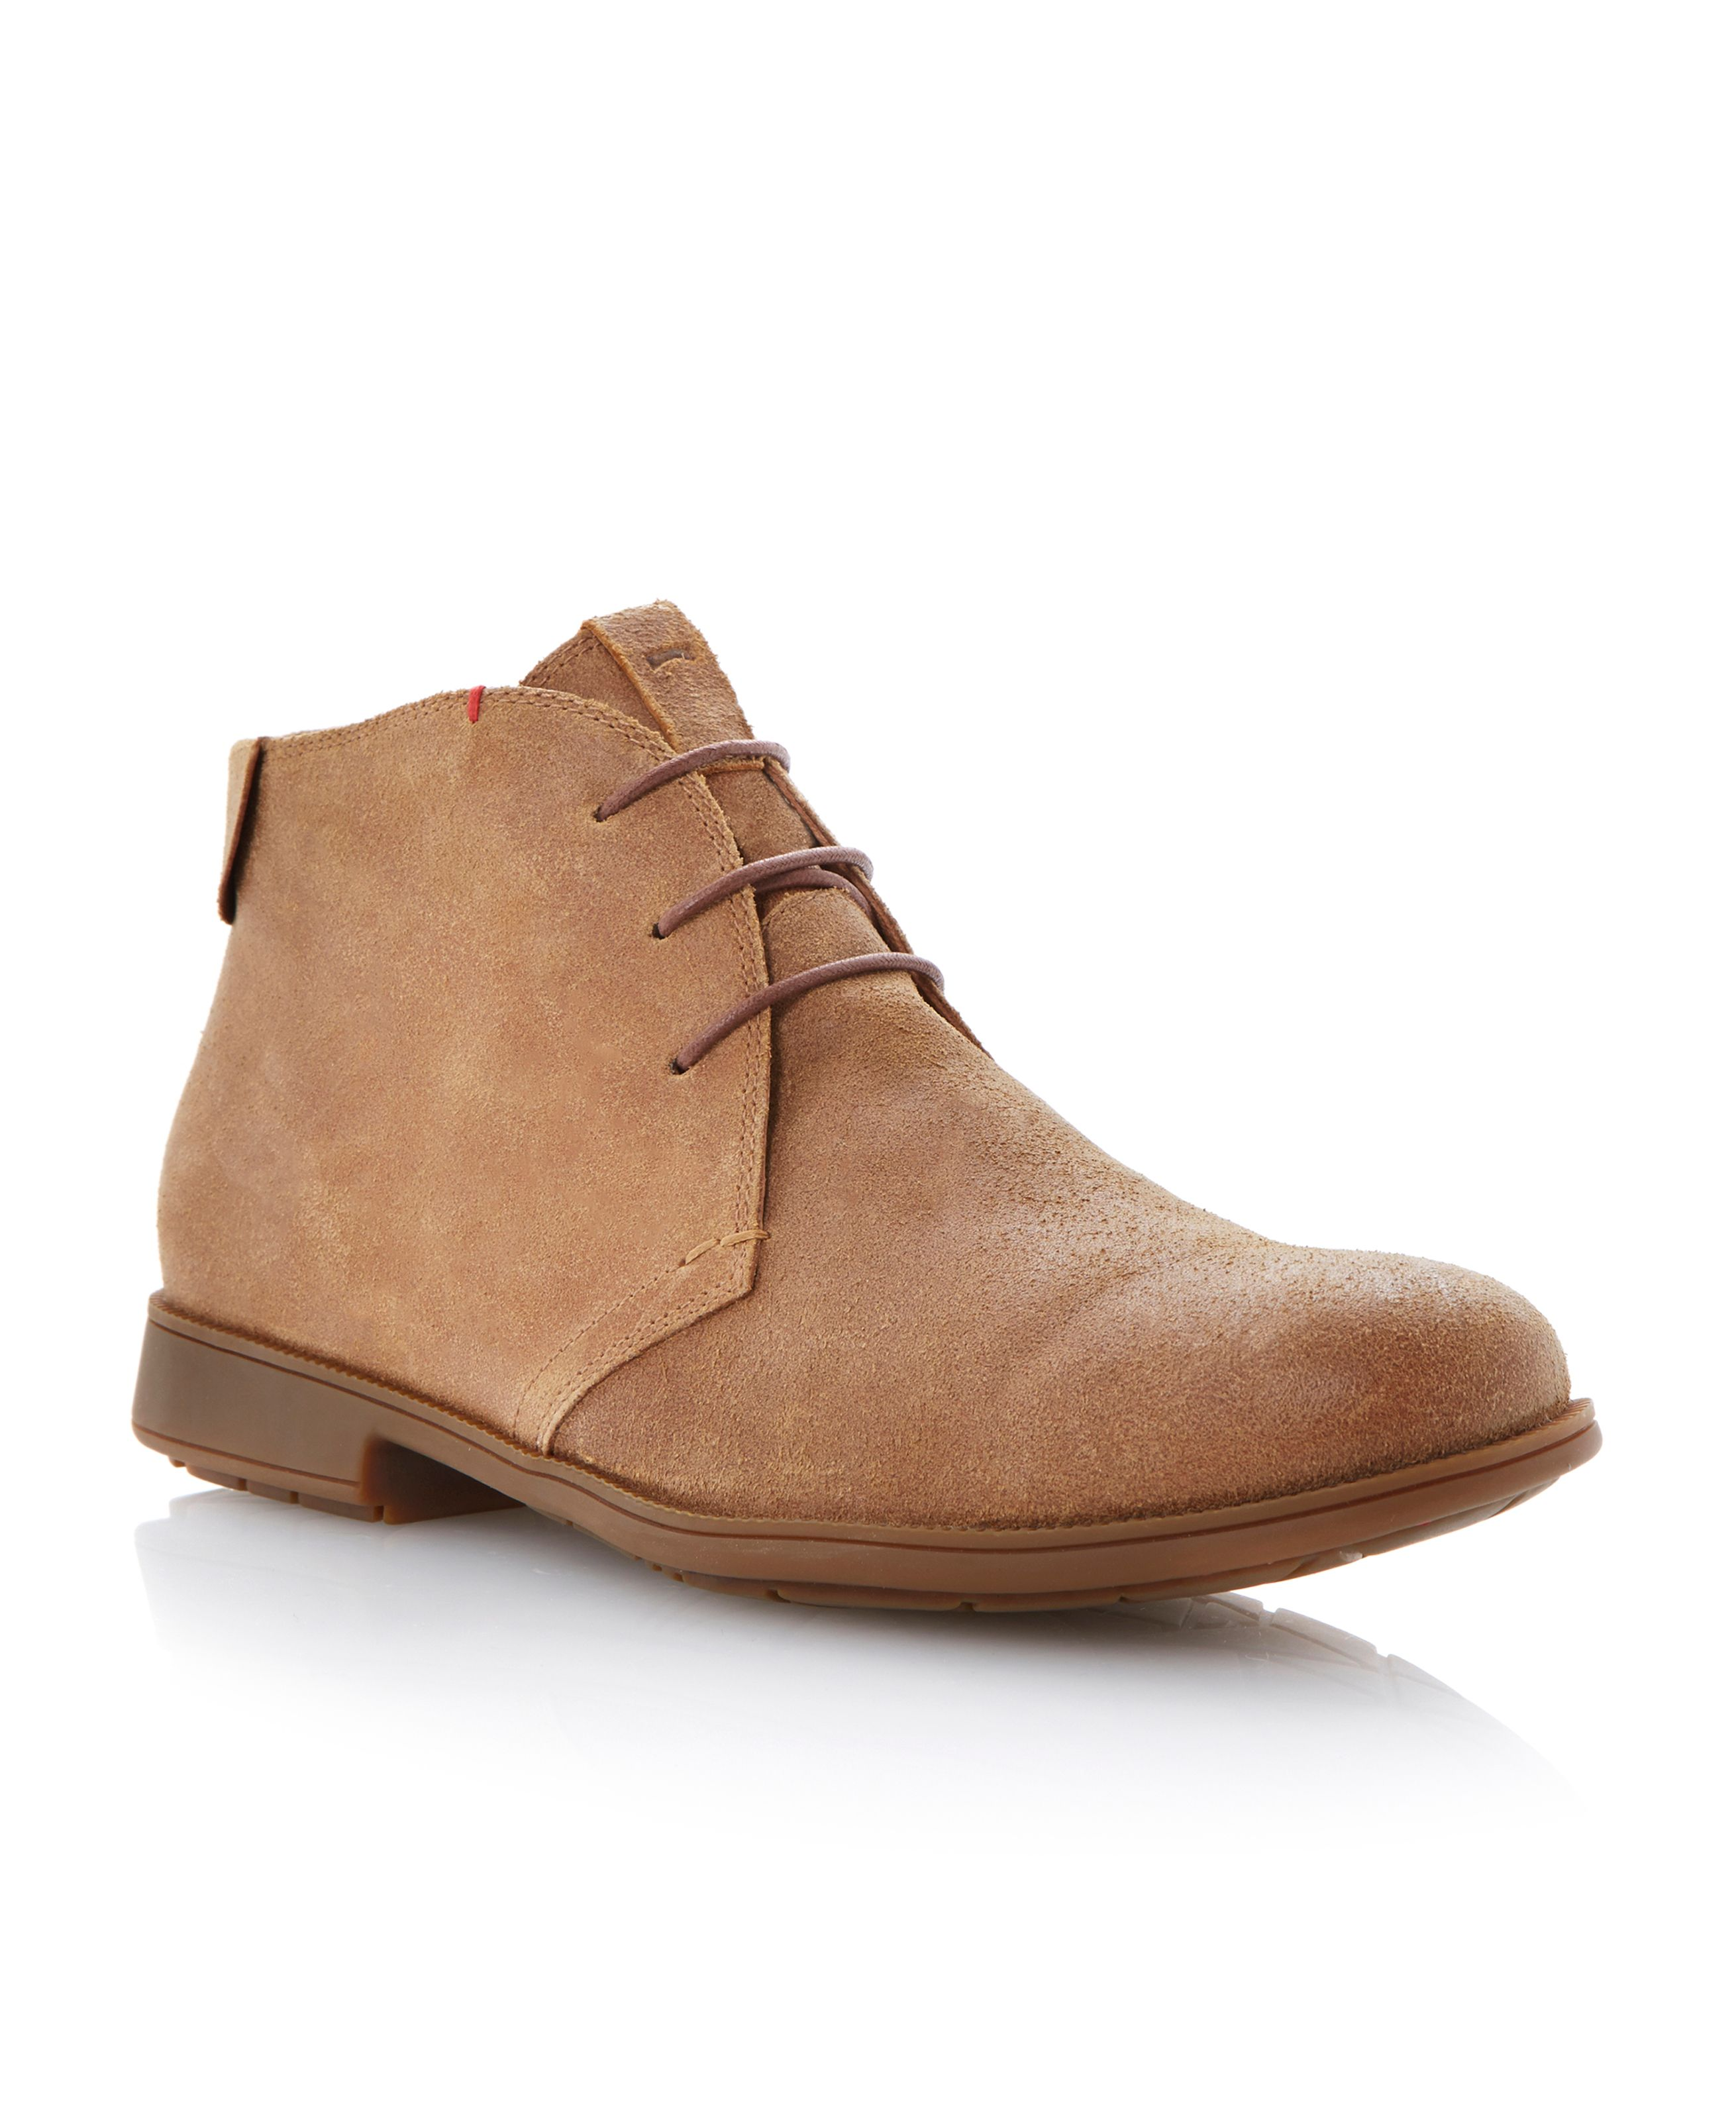 1913 chukka lace up boots